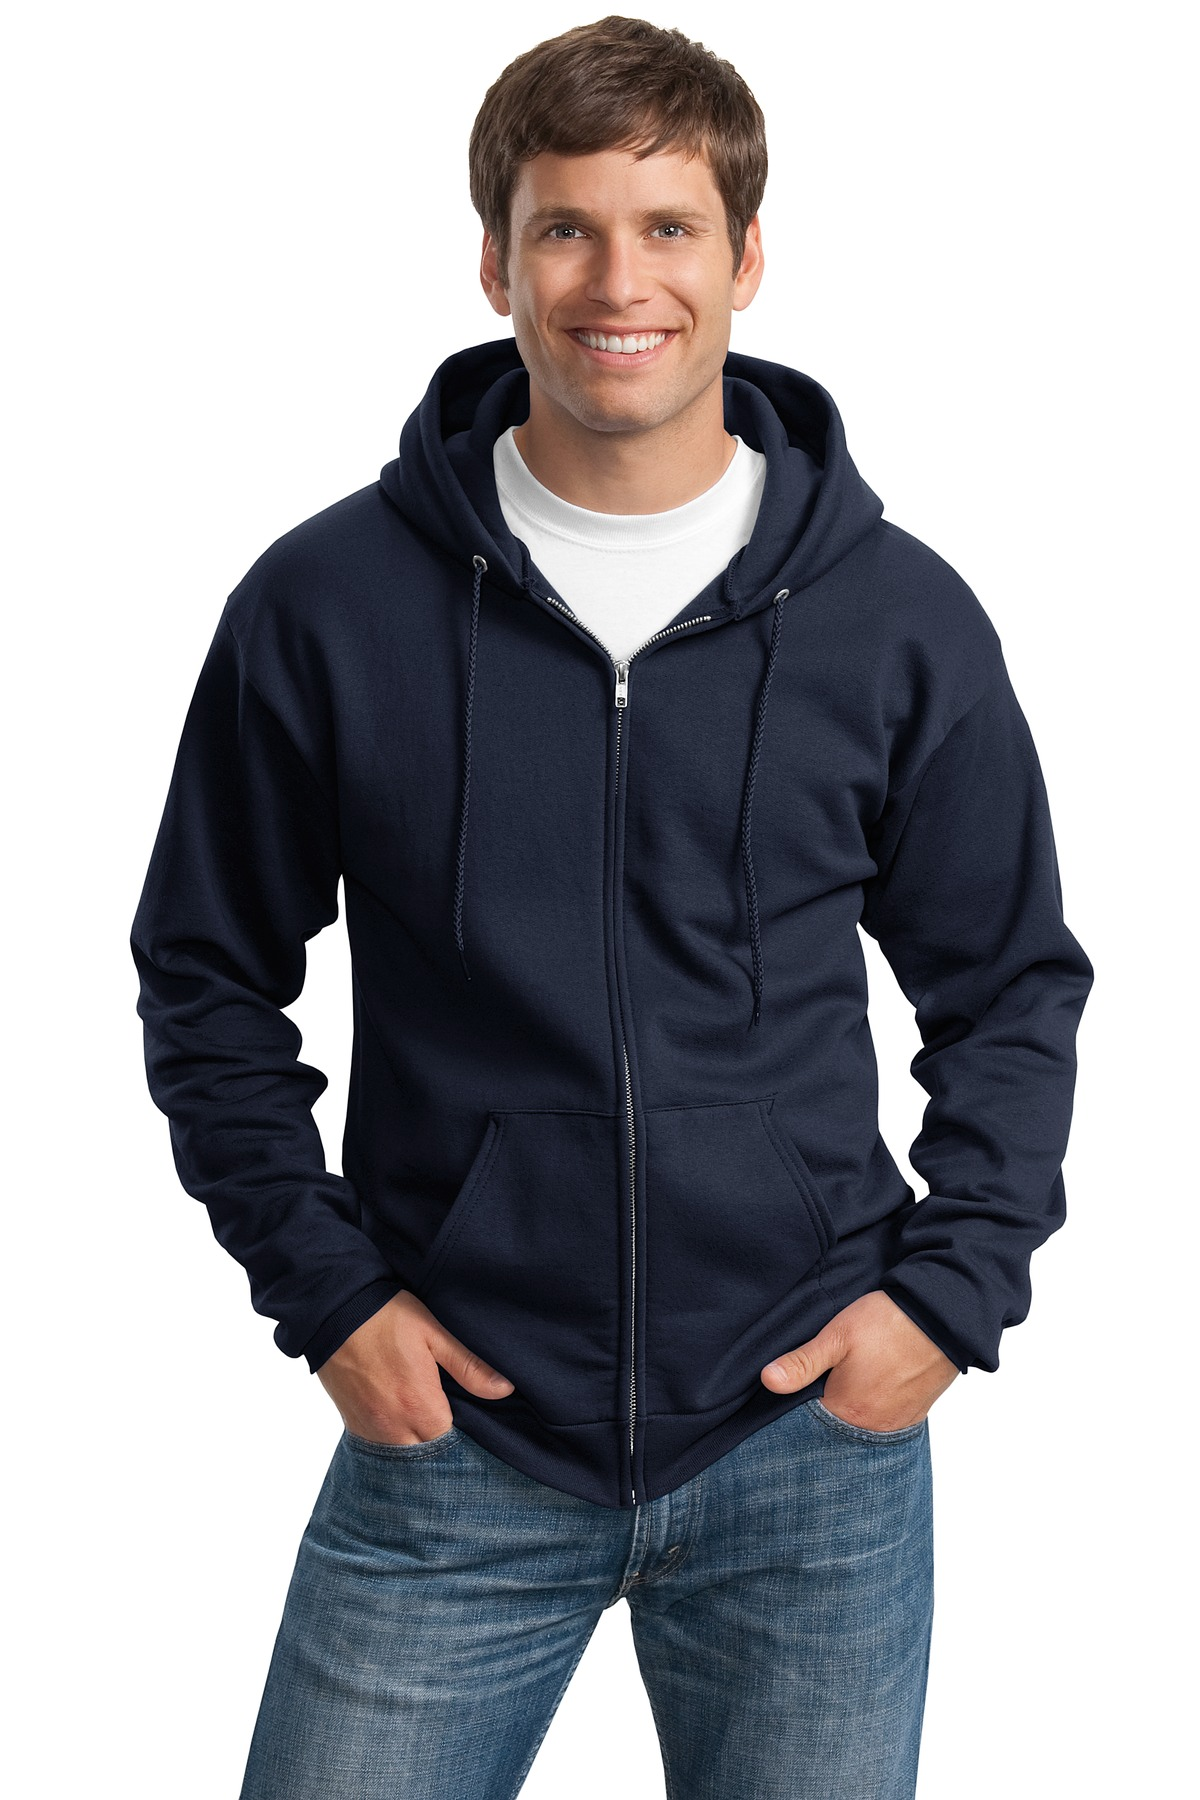 Full-Zip Hooded Sweatshirt Embroidered with Granite Nutrition Logo, Tall-Port & Company